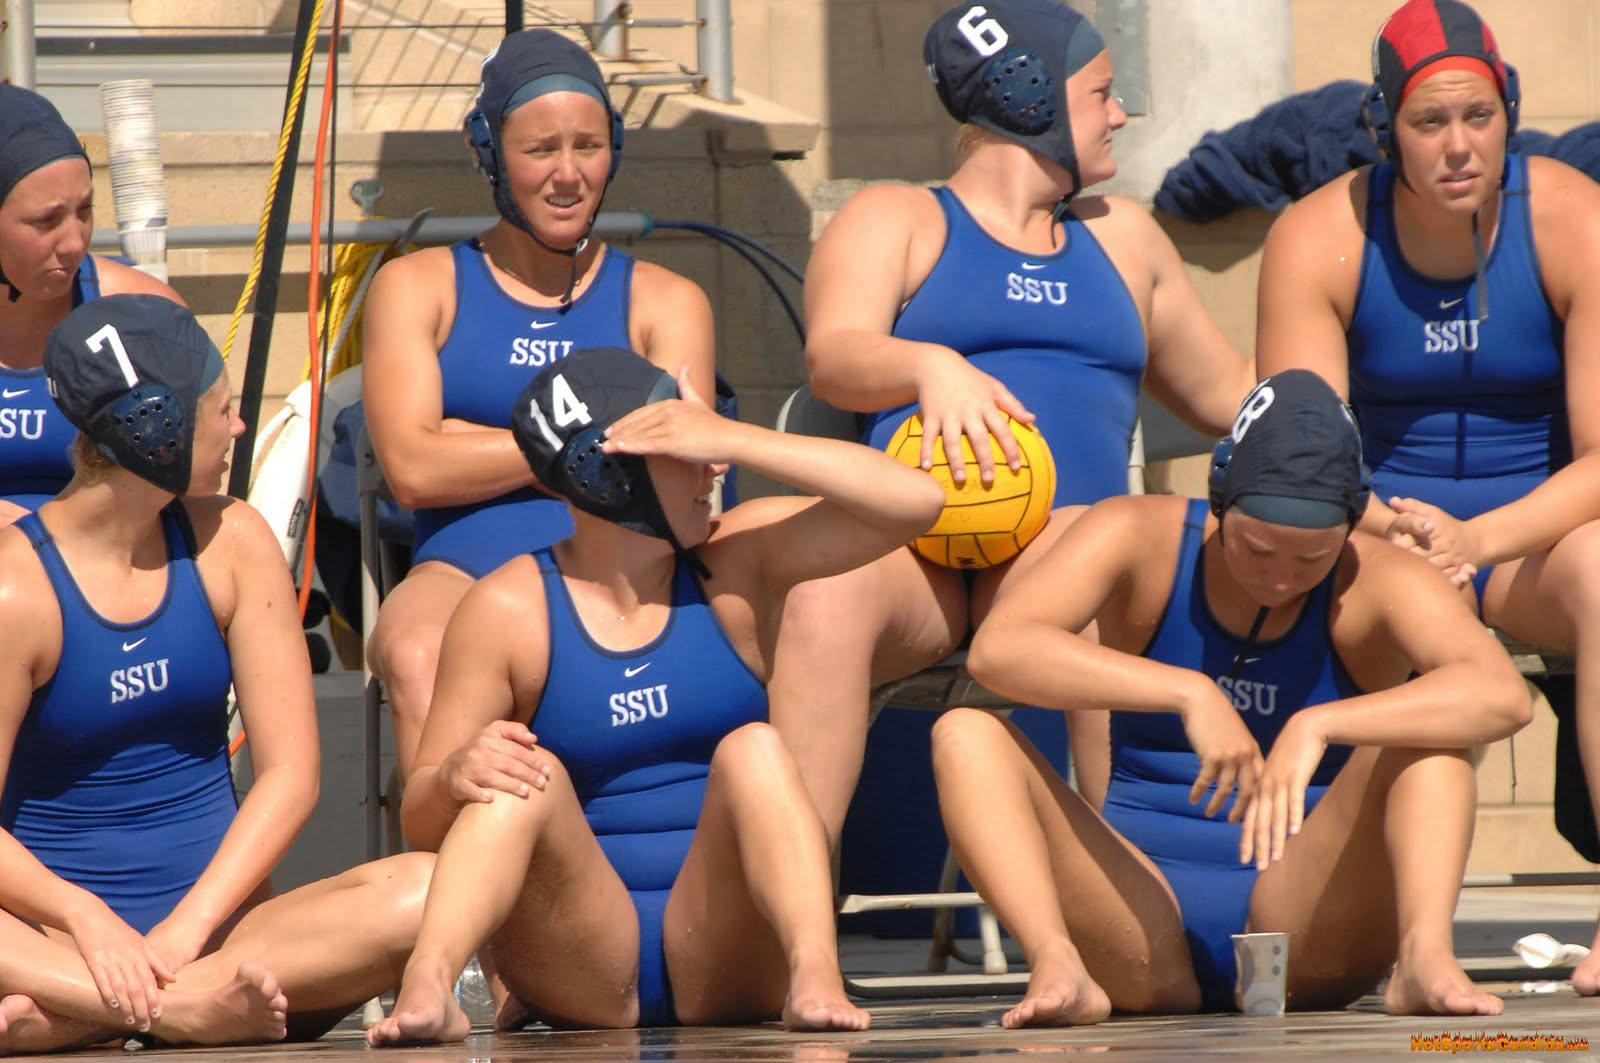 Naked sports girls water polo